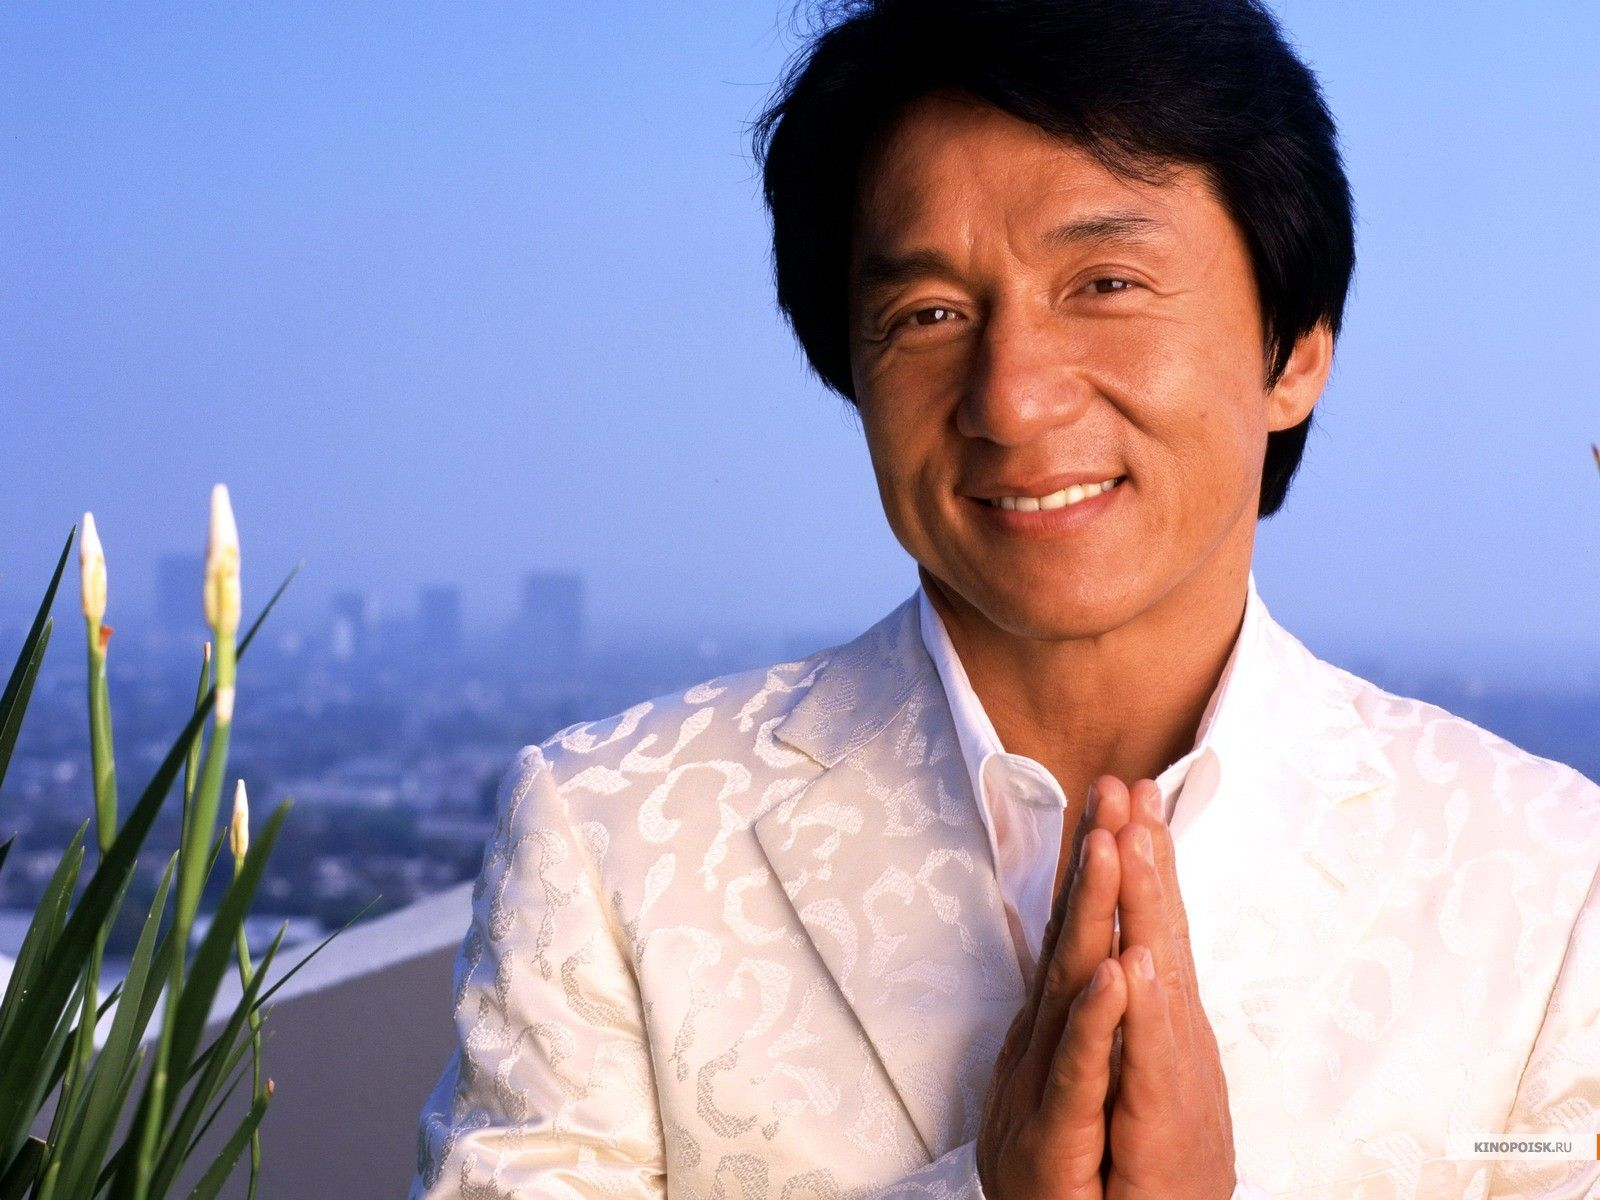 image detail for -free download high quality white coat jackie chan